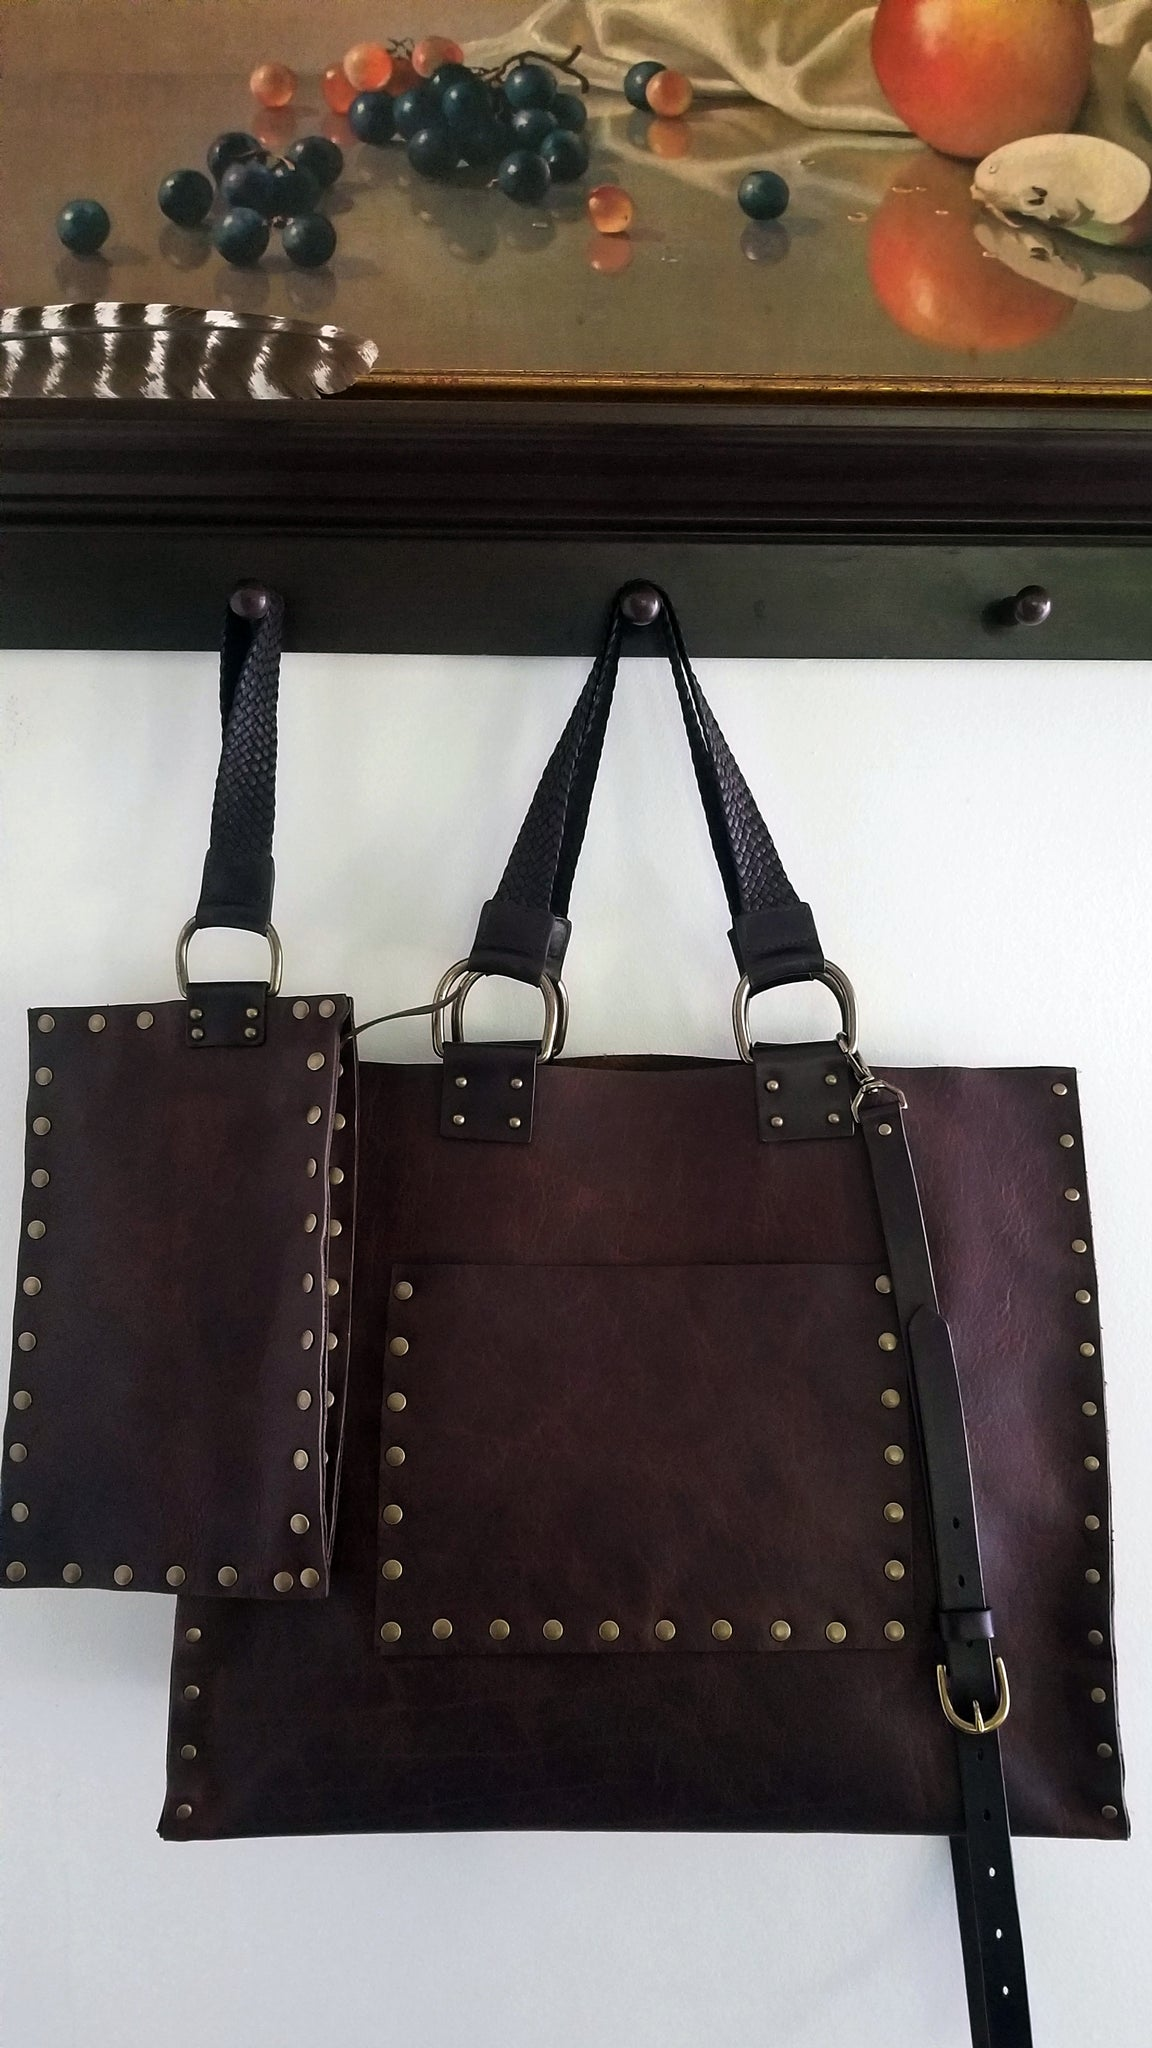 394a3d3de01bb Malia leather tote bag with matching leather wristlet in canela navajo  bison leather